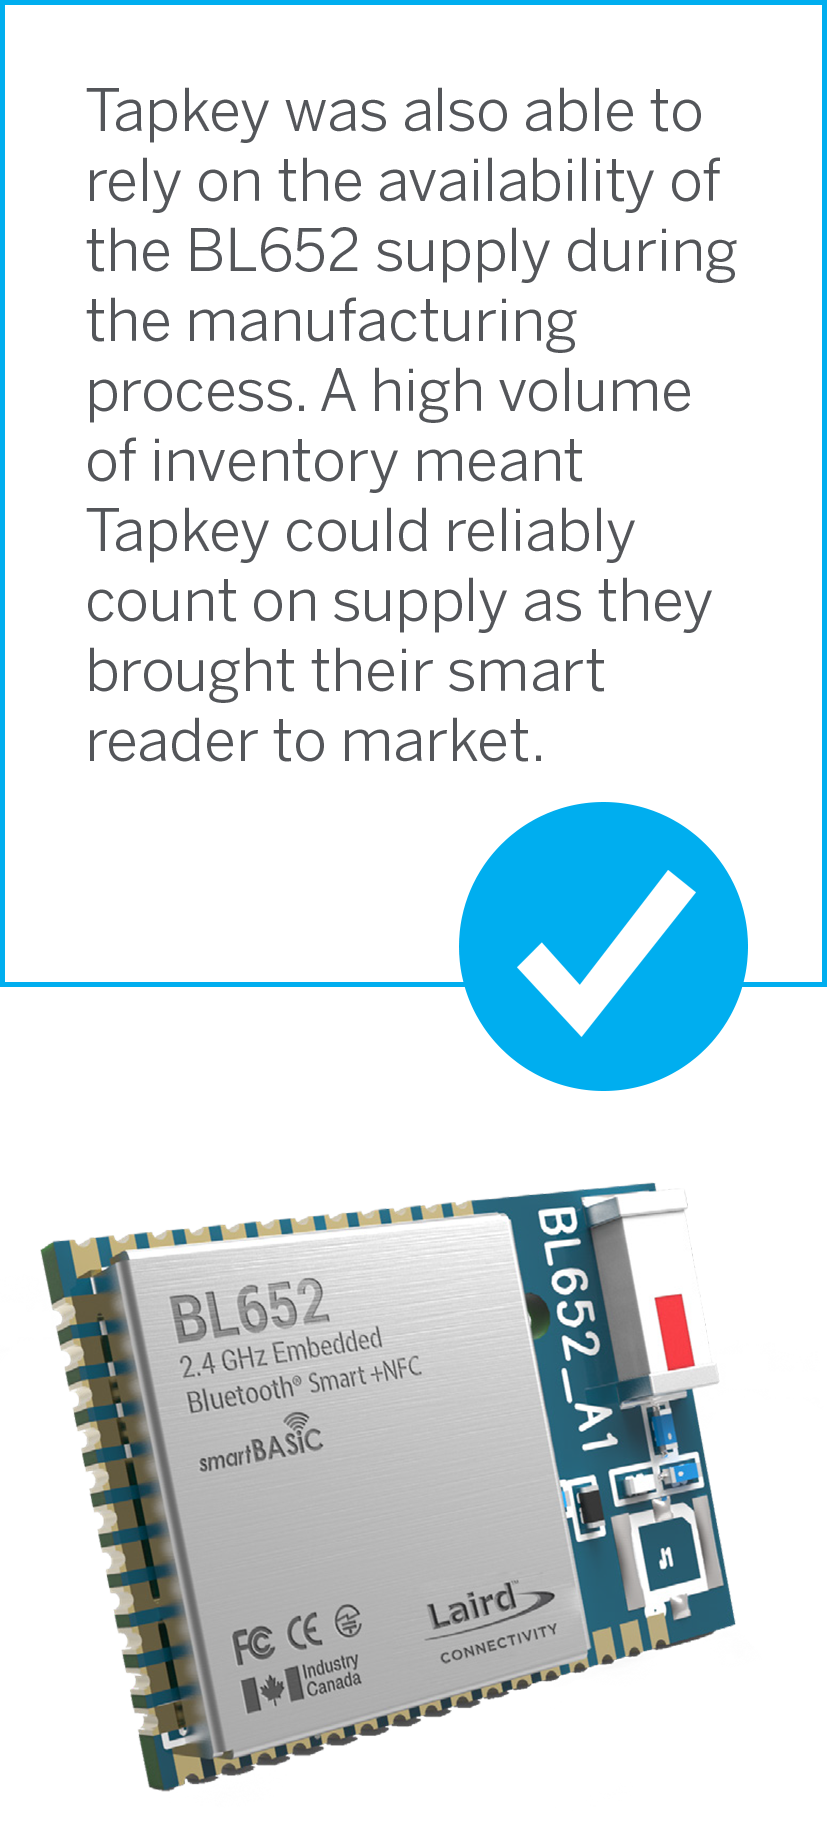 Tapkey was also able to rely on the availability of the BL652 supply during the manufacturing process. A high volume of inventory meant Tapkey could reliably count on supply as they brought their smart reader to market.